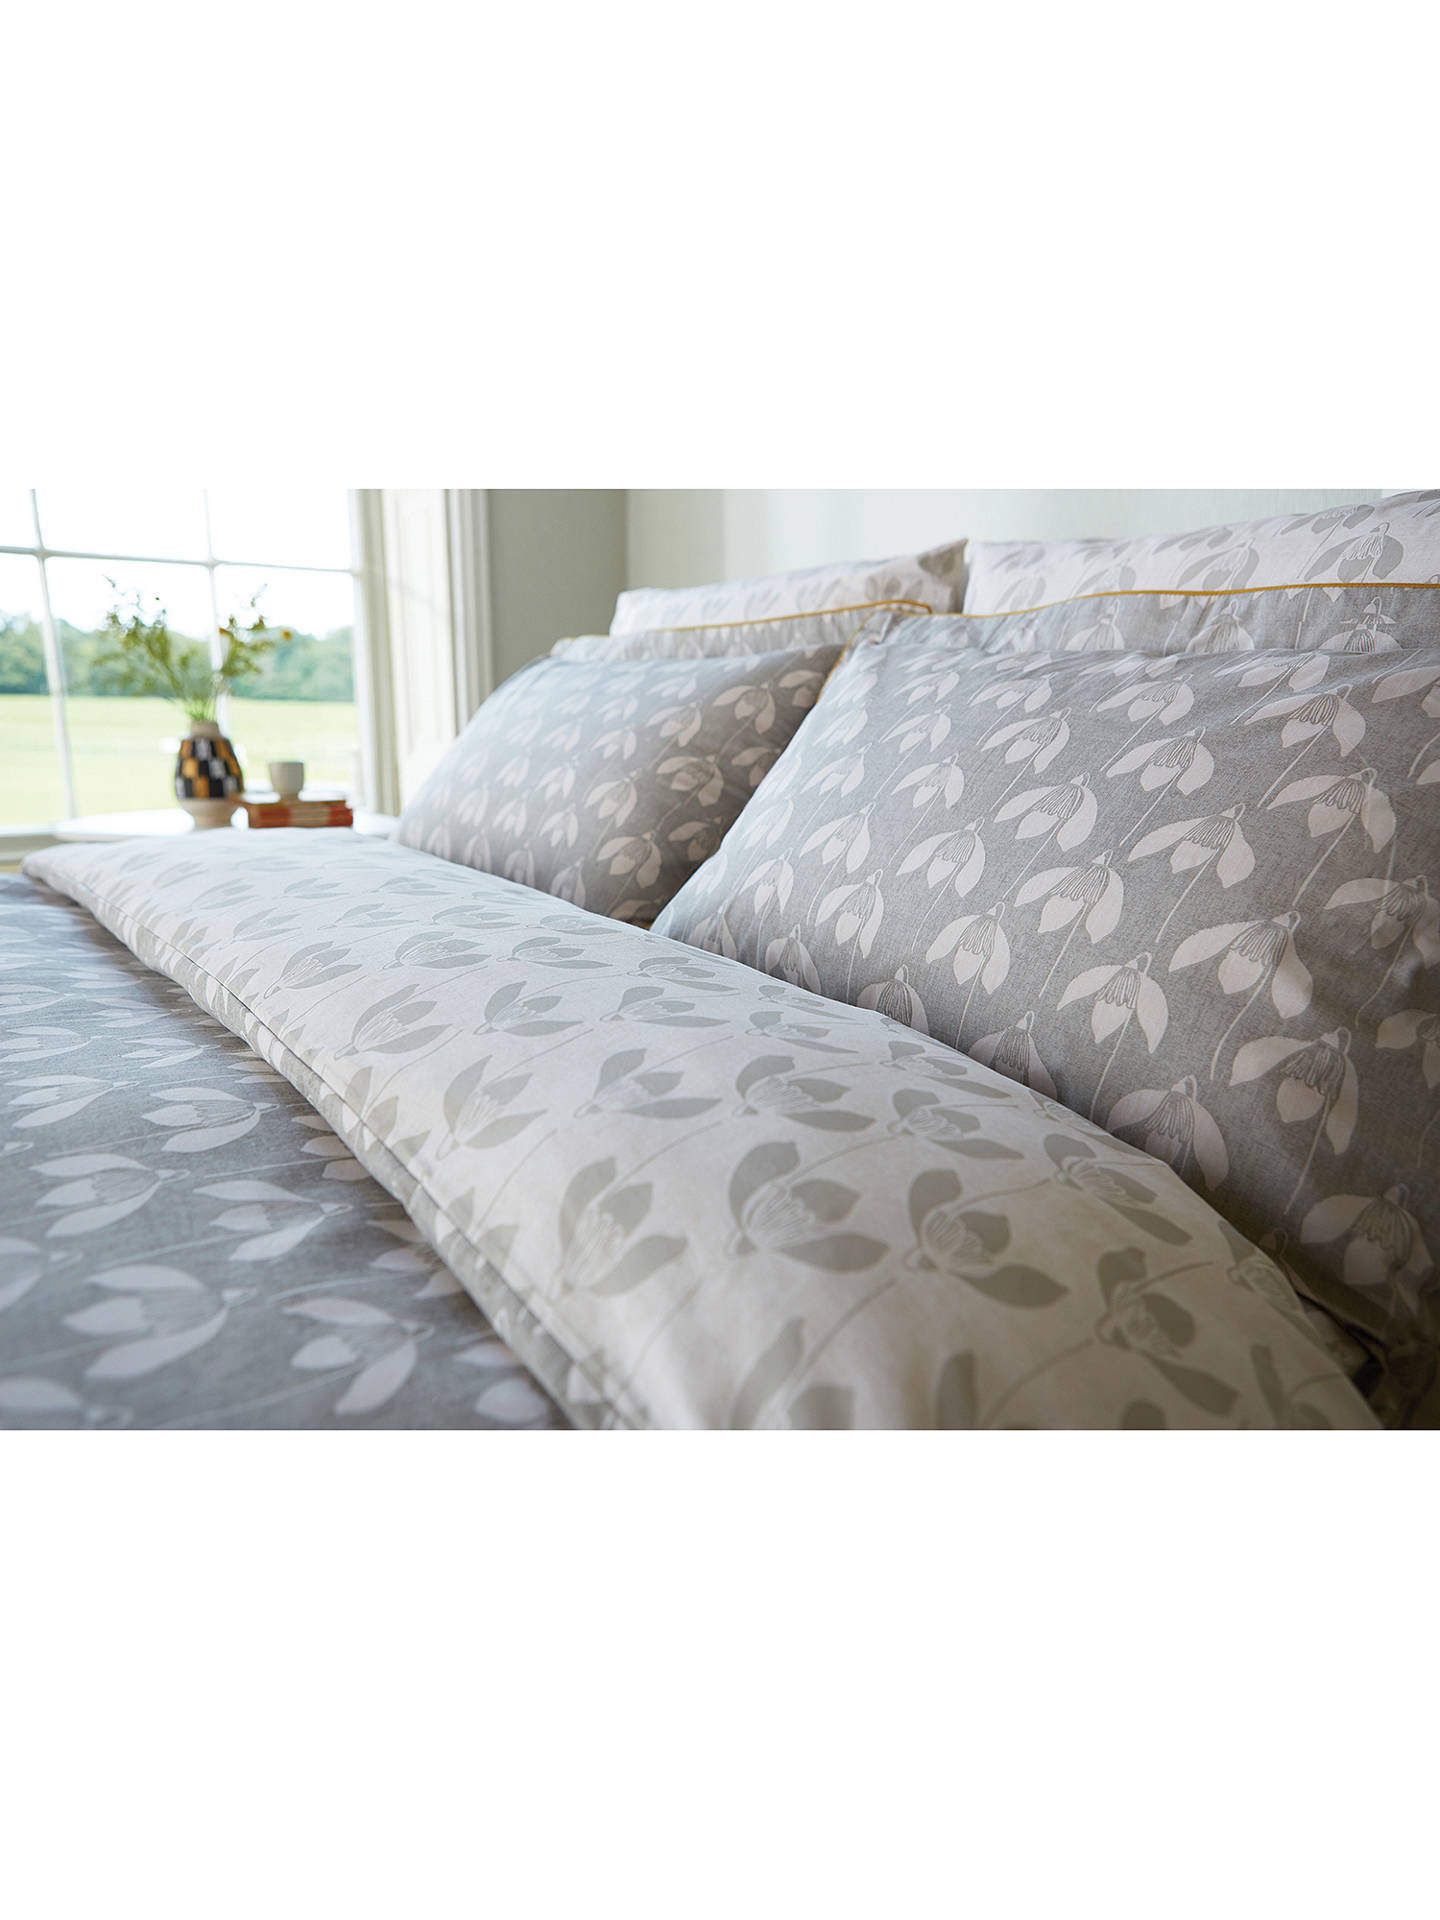 scion snowdrop bedding at john lewis partners. Black Bedroom Furniture Sets. Home Design Ideas